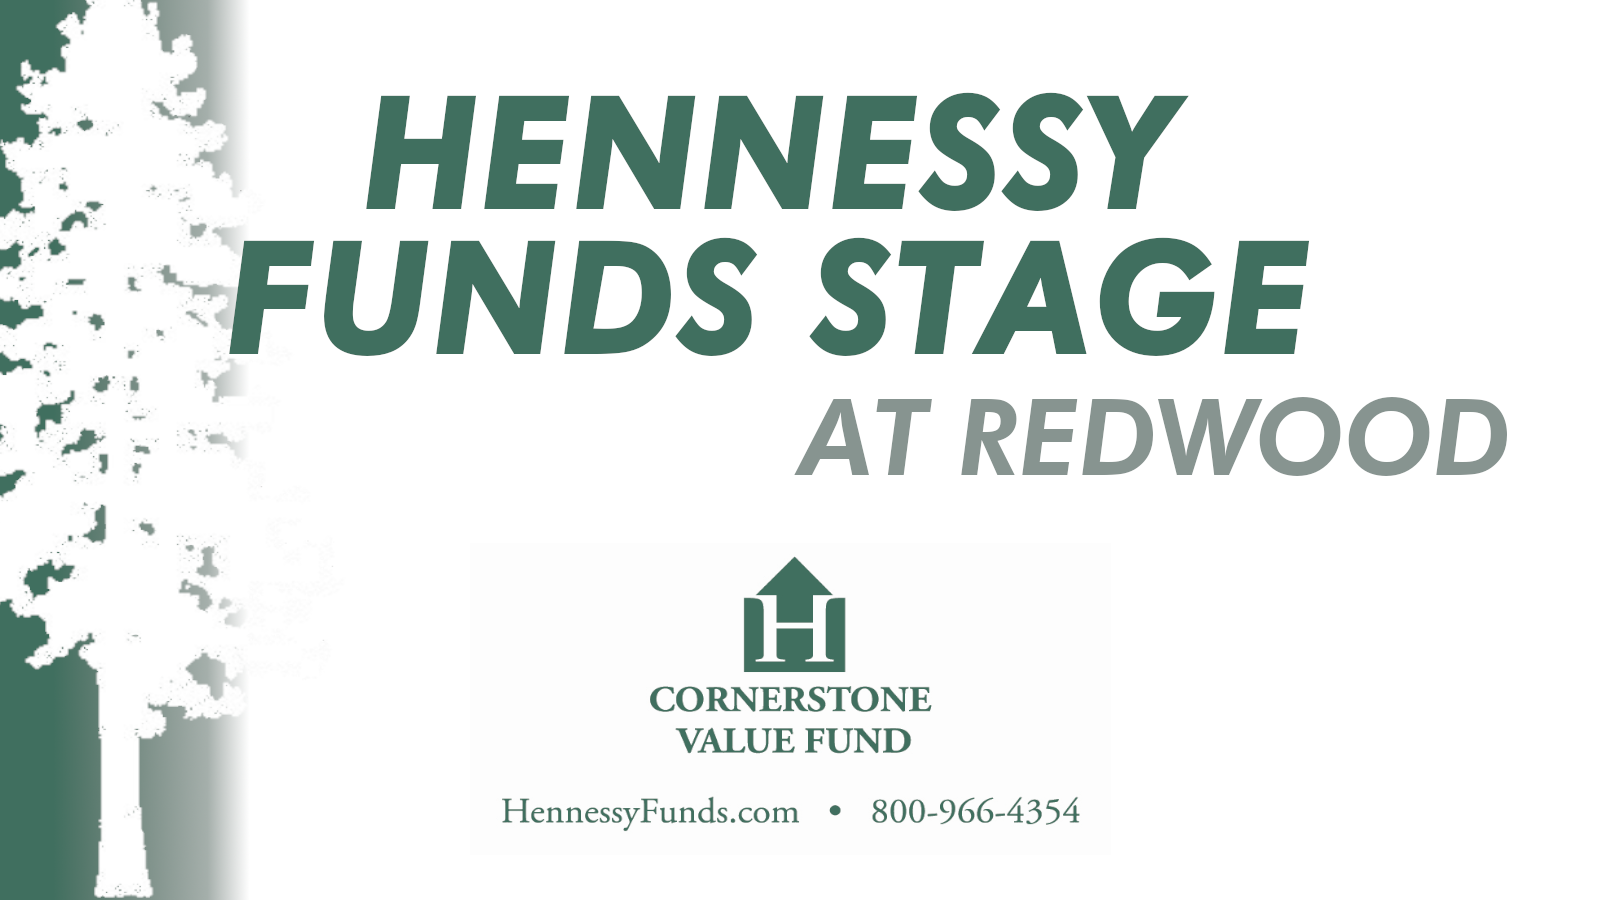 Festival Hennessy Stage Funds Victoria George Band Music Accustic Salsa blue grass country guitar piano techno funk pop rock Saturday danny click and the hell yeahs webb wilder sonoma sound syndicate novato chamber art wine music blind date rob sundberg younger youngest free music